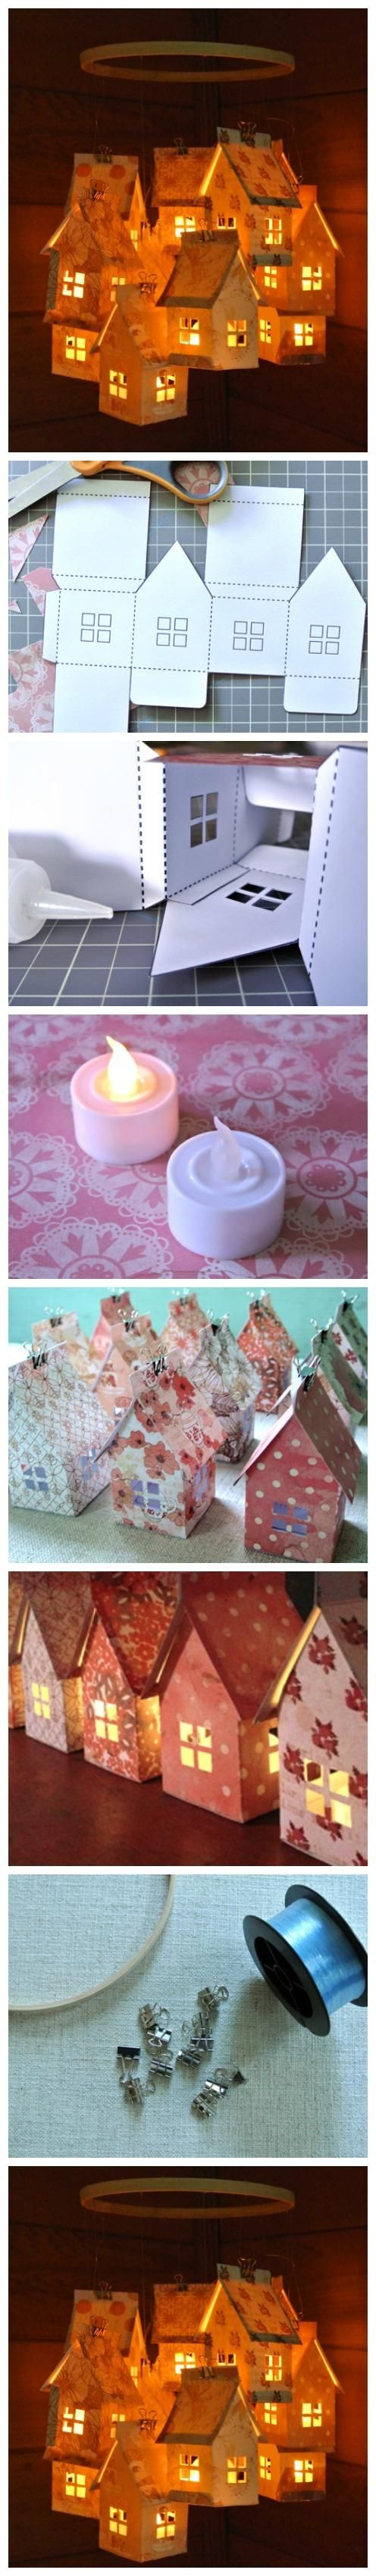 Paper House Luminaries and Mobile | DIY Crafts Tips